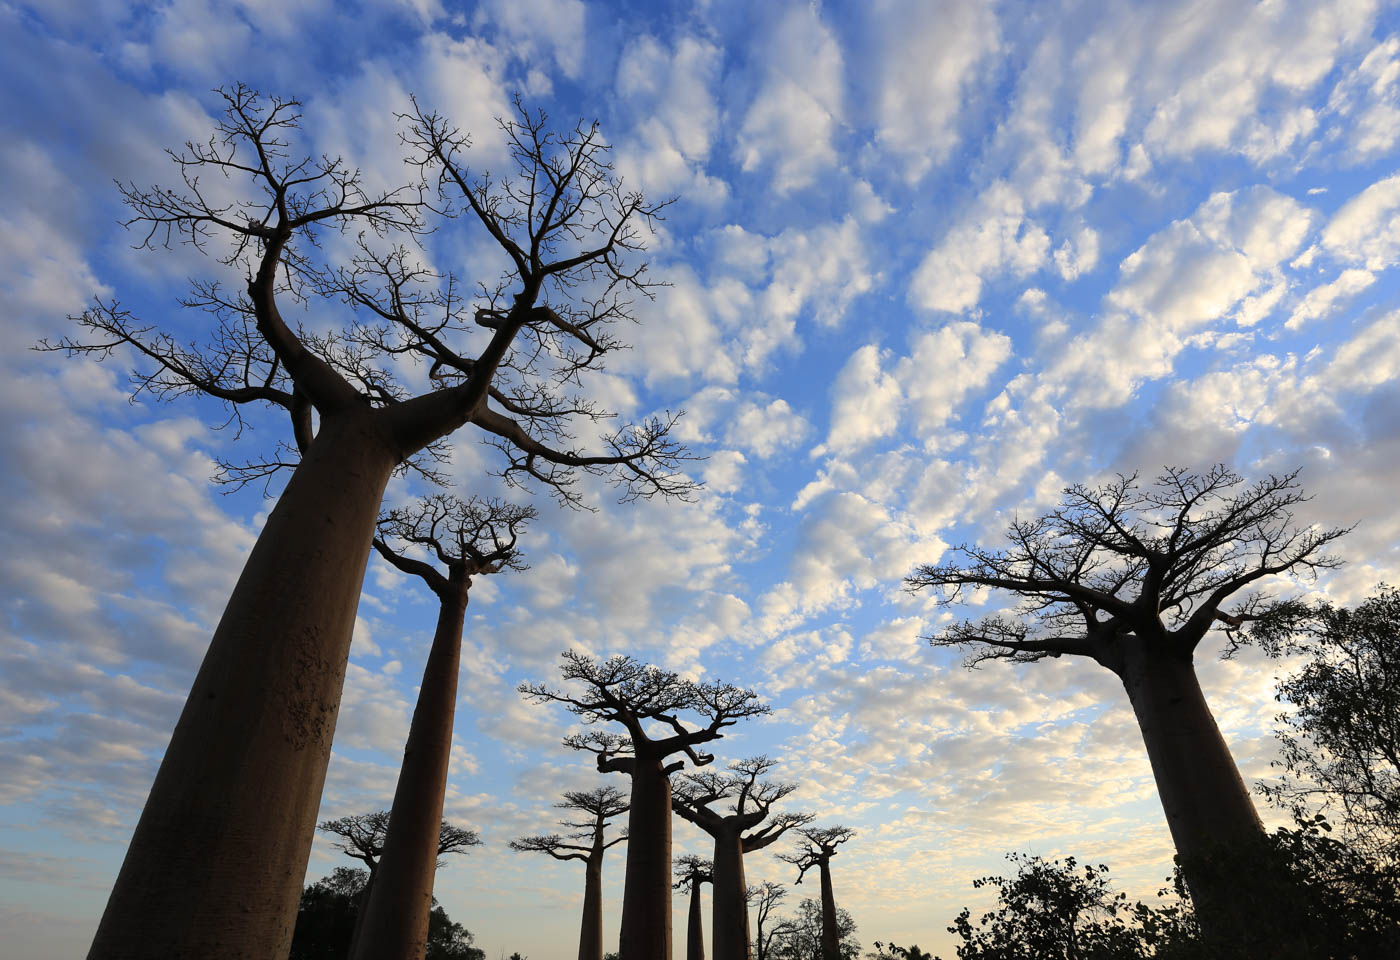 Wide angle shot of trees in Madagasgar taken with Canon EOS 6D DSLR camera